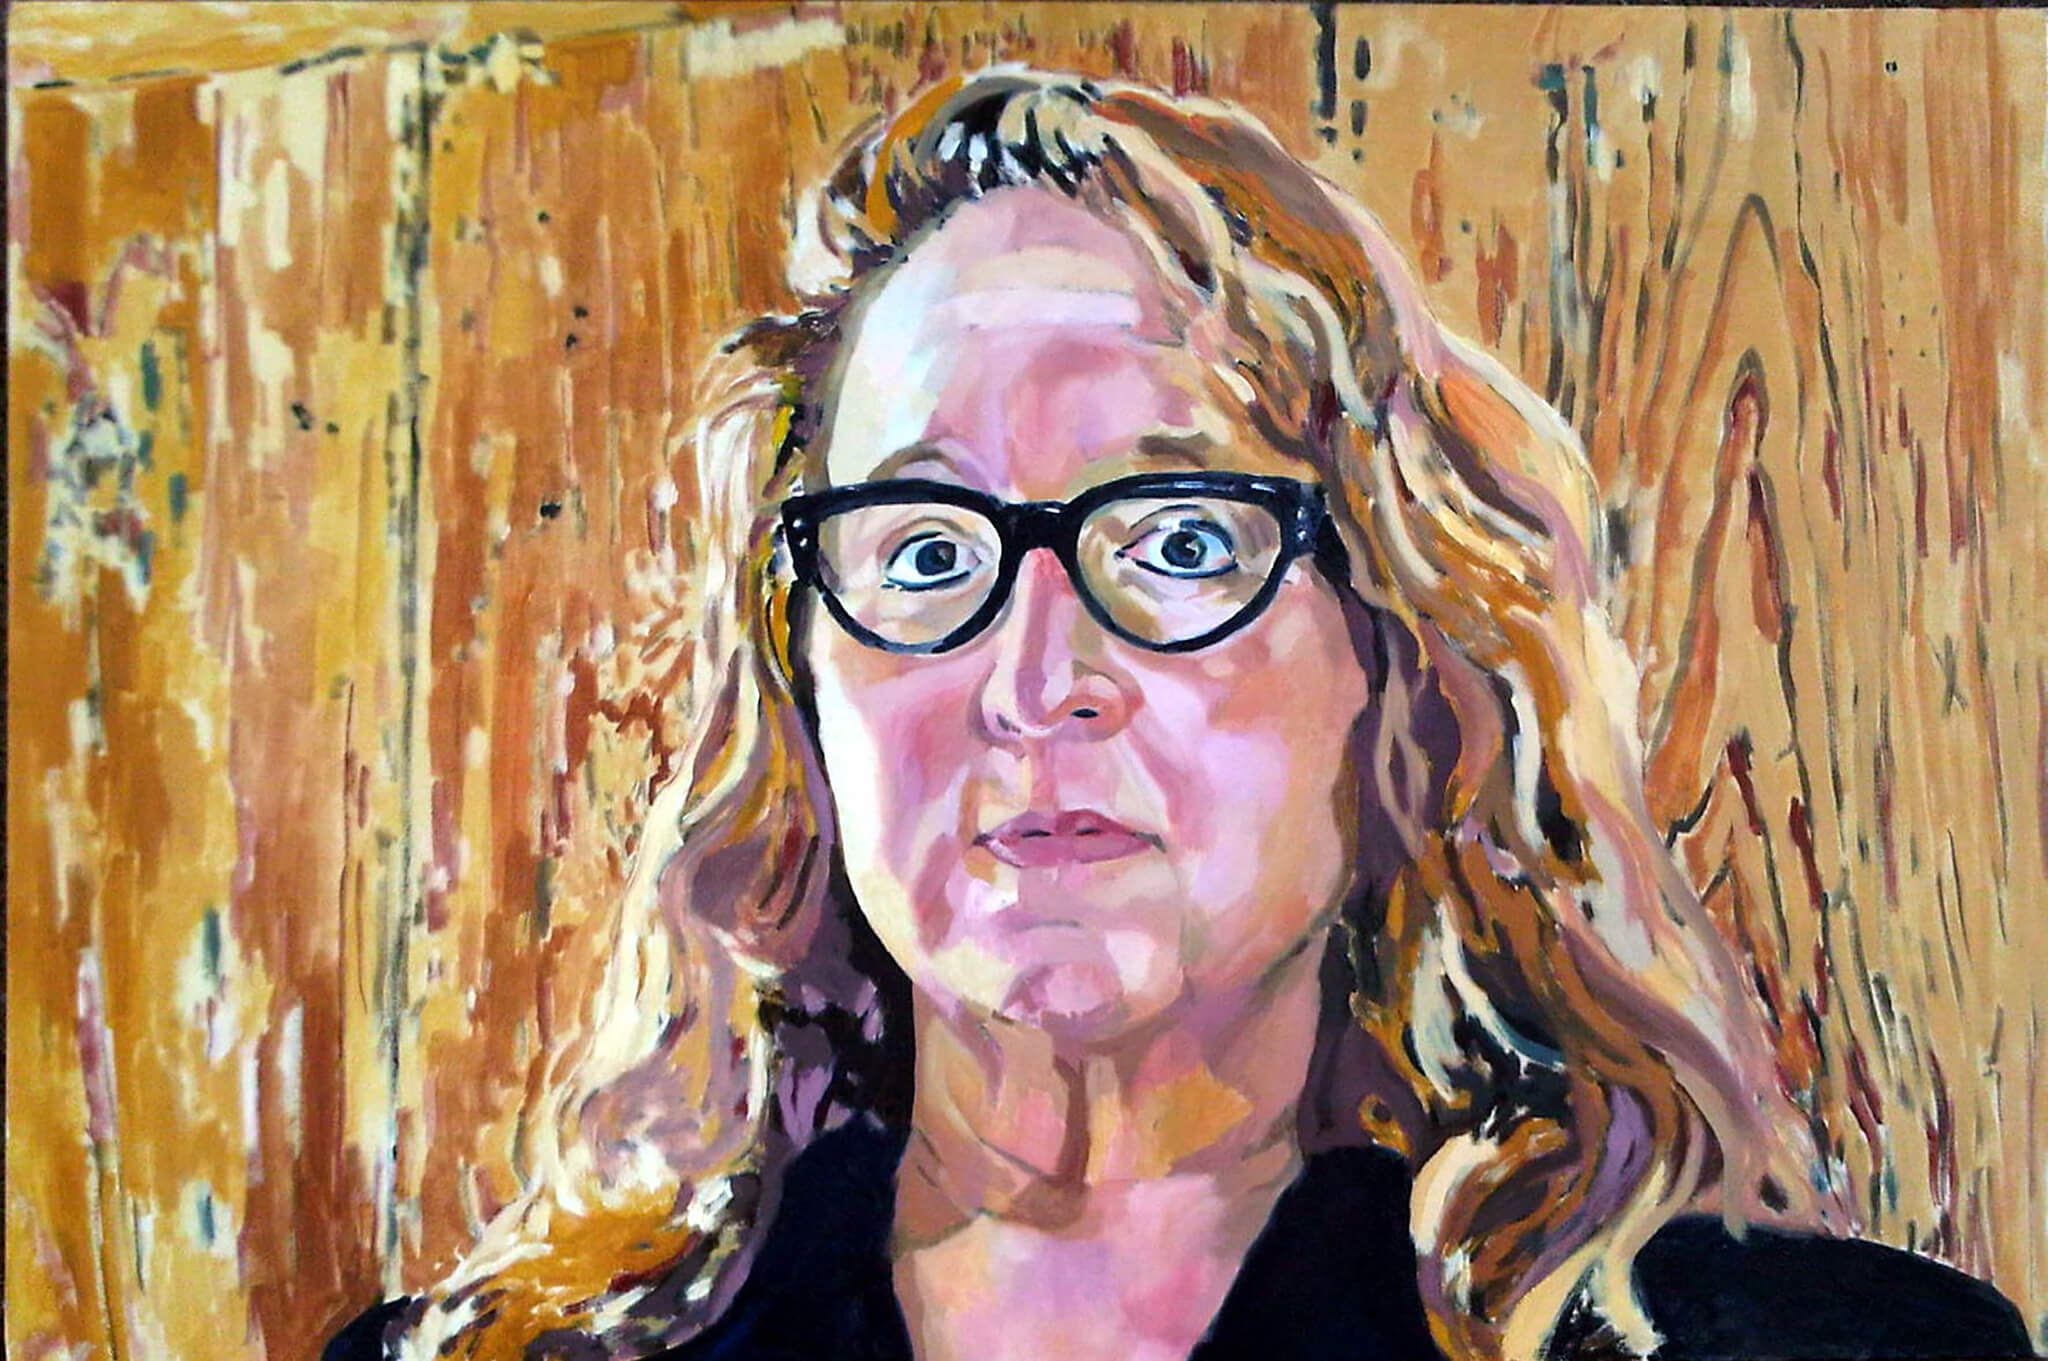 Amy Selwyn commissioned portrait in oils artwork by Stella Tooth.